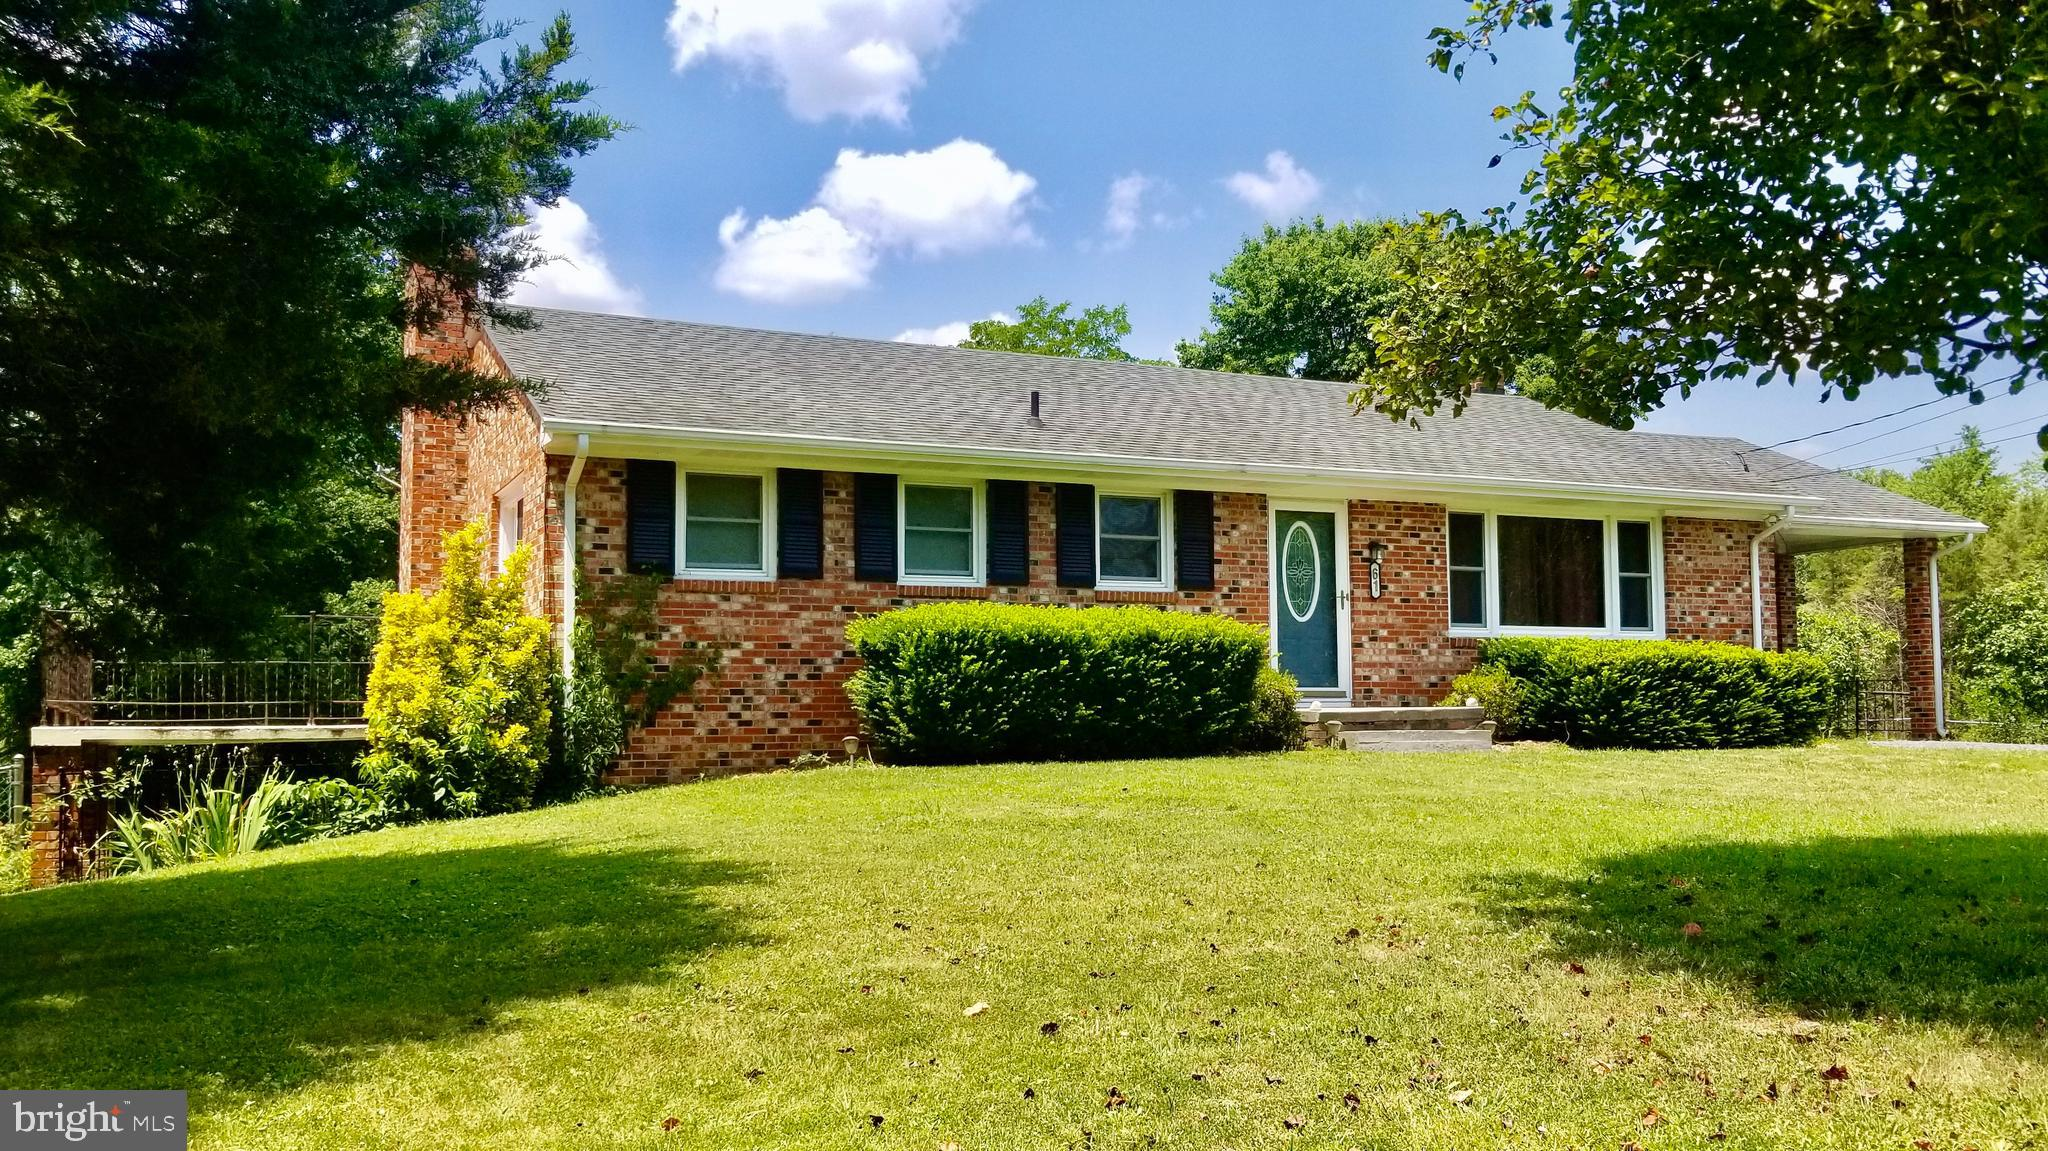 Beautifully updated brick rancher on premium half acre lot with main level master bedroom and walkout basement!  Quietly located on a no-thru street, but convenient to I-66, this stunner offers an open kitchen with new laminate flooring, upgraded designer cabinets, stainless steel appliances, propane gas stove, pantry, and quartz countertops, large windows with lots of natural light, ceiling fans in every bedroom, refinished hardwood floors.  Master bedroom with double closets boasts its own private 27' balcony to enjoy your morning coffee while listening to the birds singing from the beautiful evergreens and flowering trees.  12 x 27 covered patio for outdoor entertaining adjacent to the huge fenced yard.  Main level bathroom with double vanity and wainscoting. Partially finished, walkout basement with lots of natural lighting is the perfect space for game night and entertaining in the 23 x 13 den, carpeting has been replaced, full bathroom with stall shower, wood stove with custom stone surround with storage space for stacked wood.  Covered attached carport with wheelchair ramp accessibility, storage shed, water treatment system.  Water heater, washer, and dryer are less than 4 years old.  Brand new outdoor a/c unit.  Xfinity high speed internet available.  Total acreage includes additional lot, Tax ID 18A 1 2 8.  Check out the virtual tour! Warren County, VA